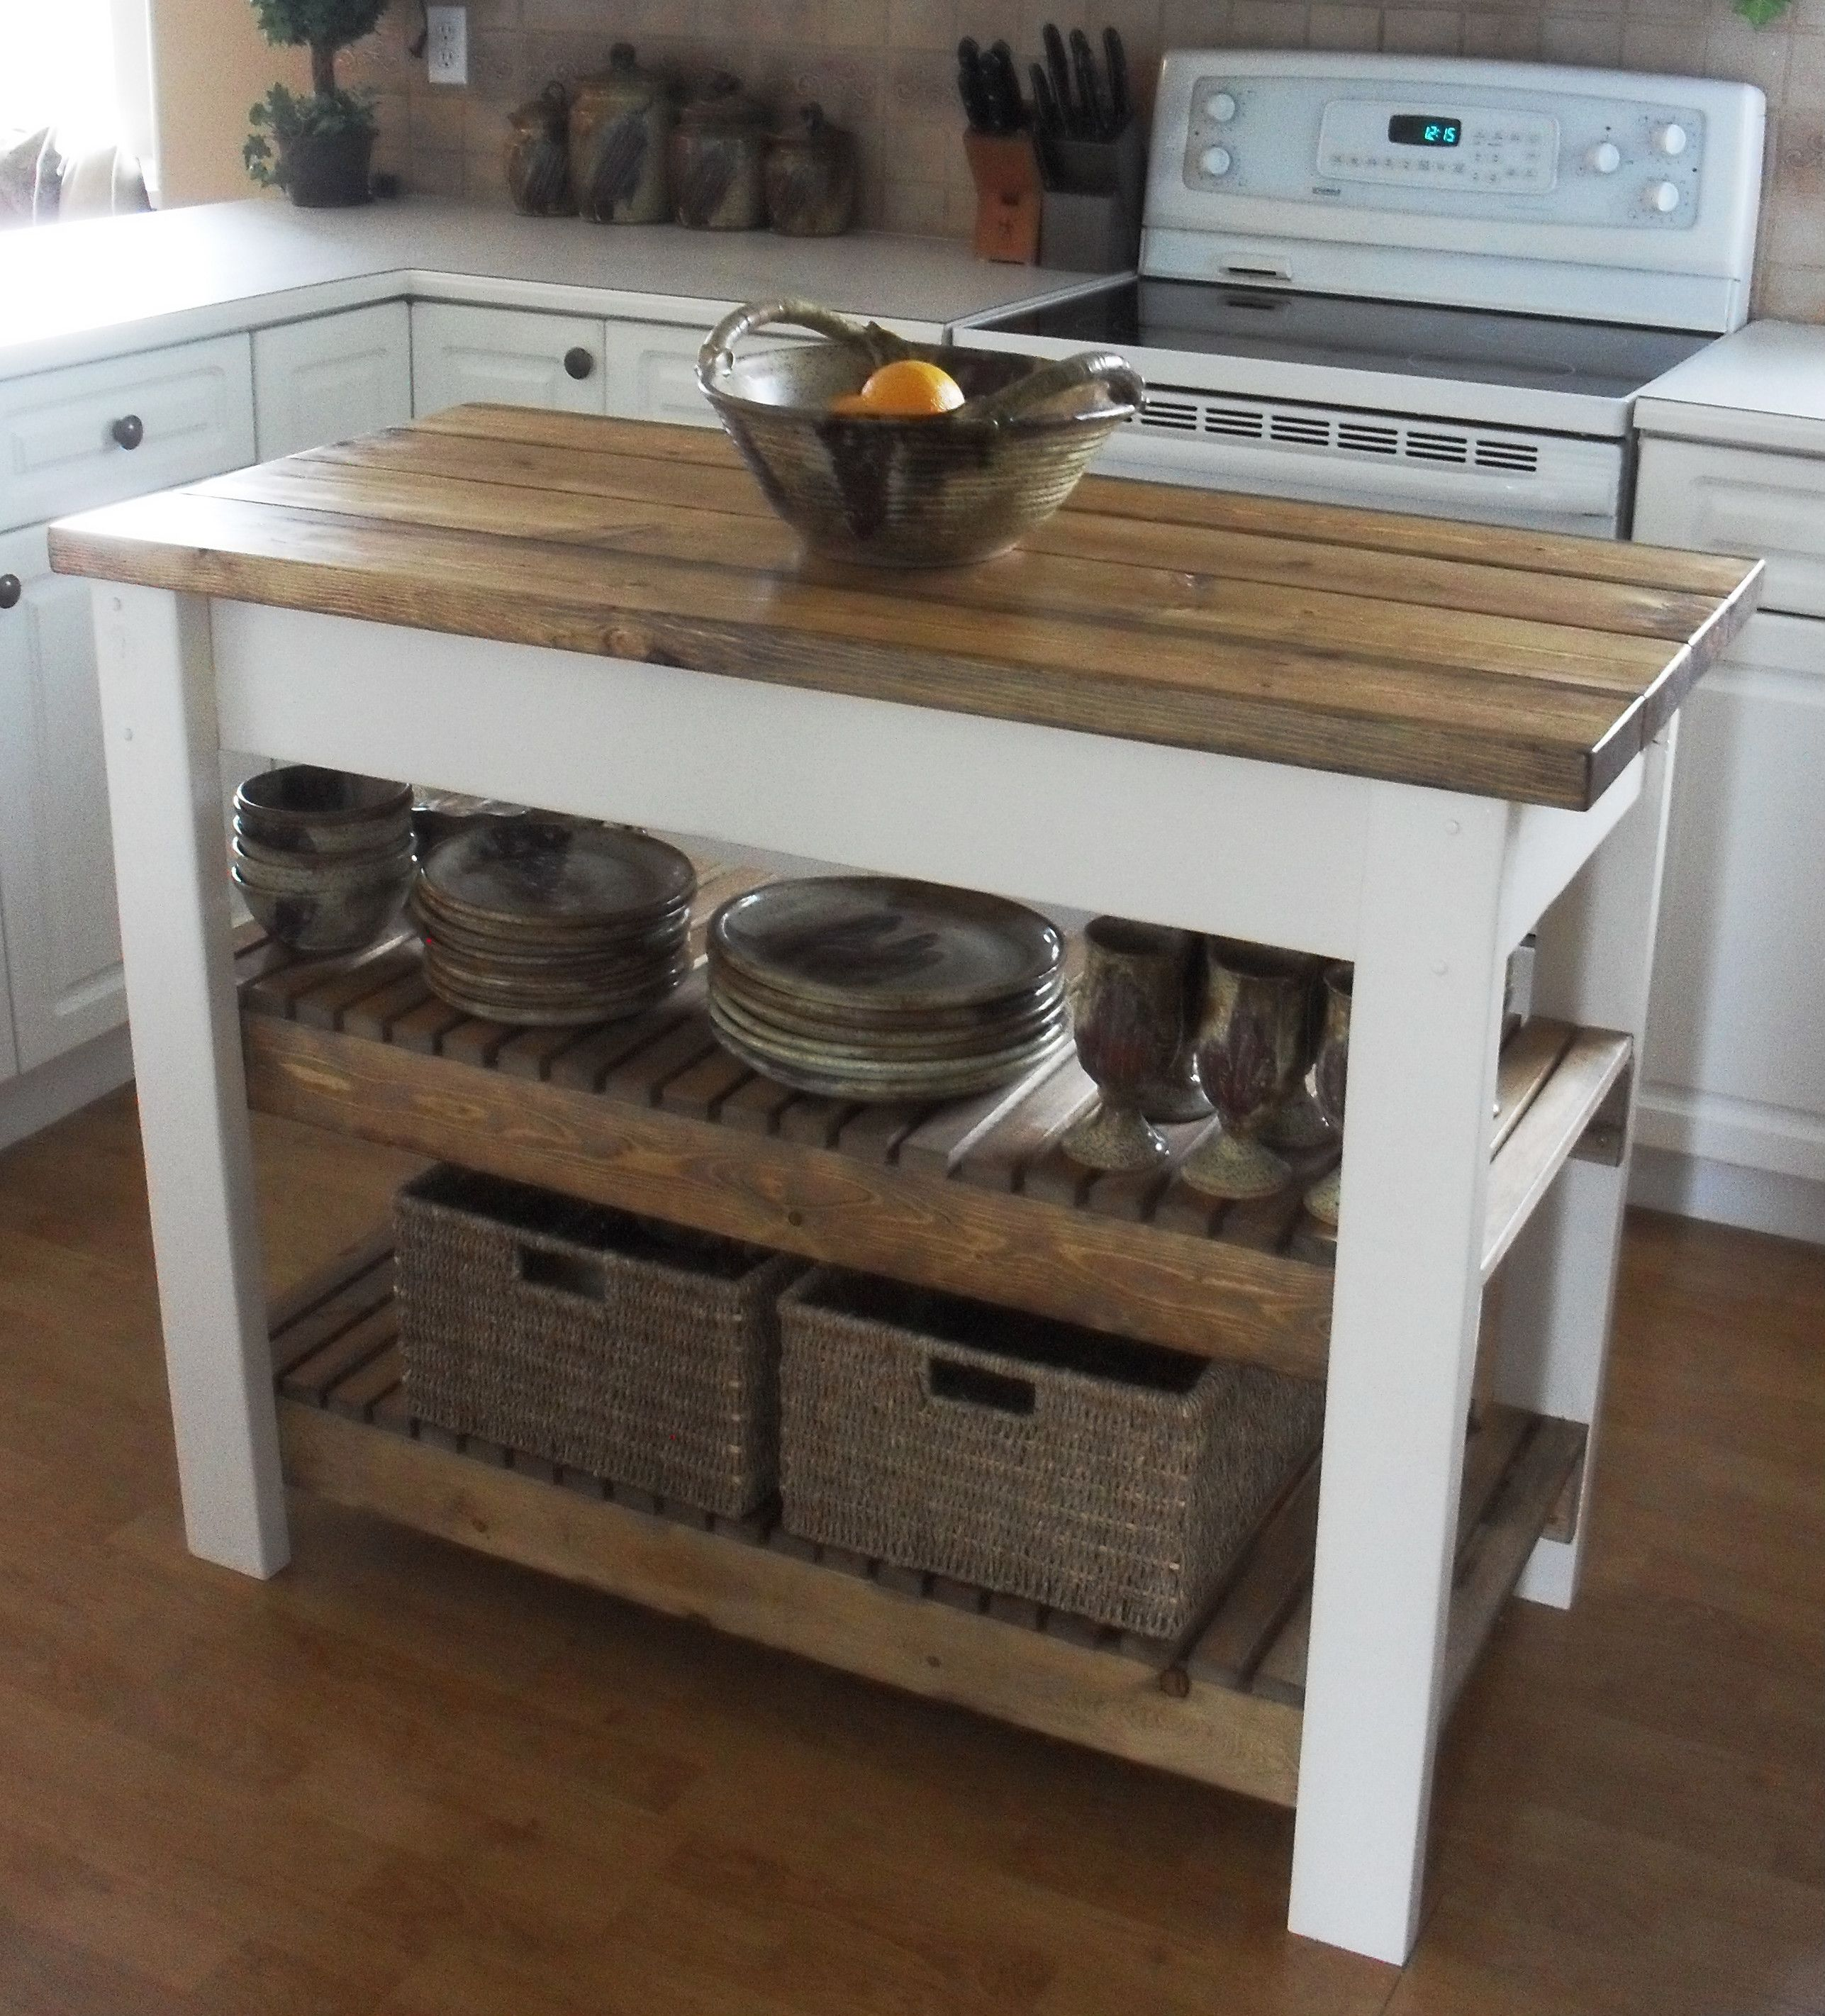 Kitchen Workbench Small Lighting Ideas Diy Island 47 In Materials Although I D Probably Extend It Out A Few Inches To Add Seating Baskets Would Be Perfect Place Store Things